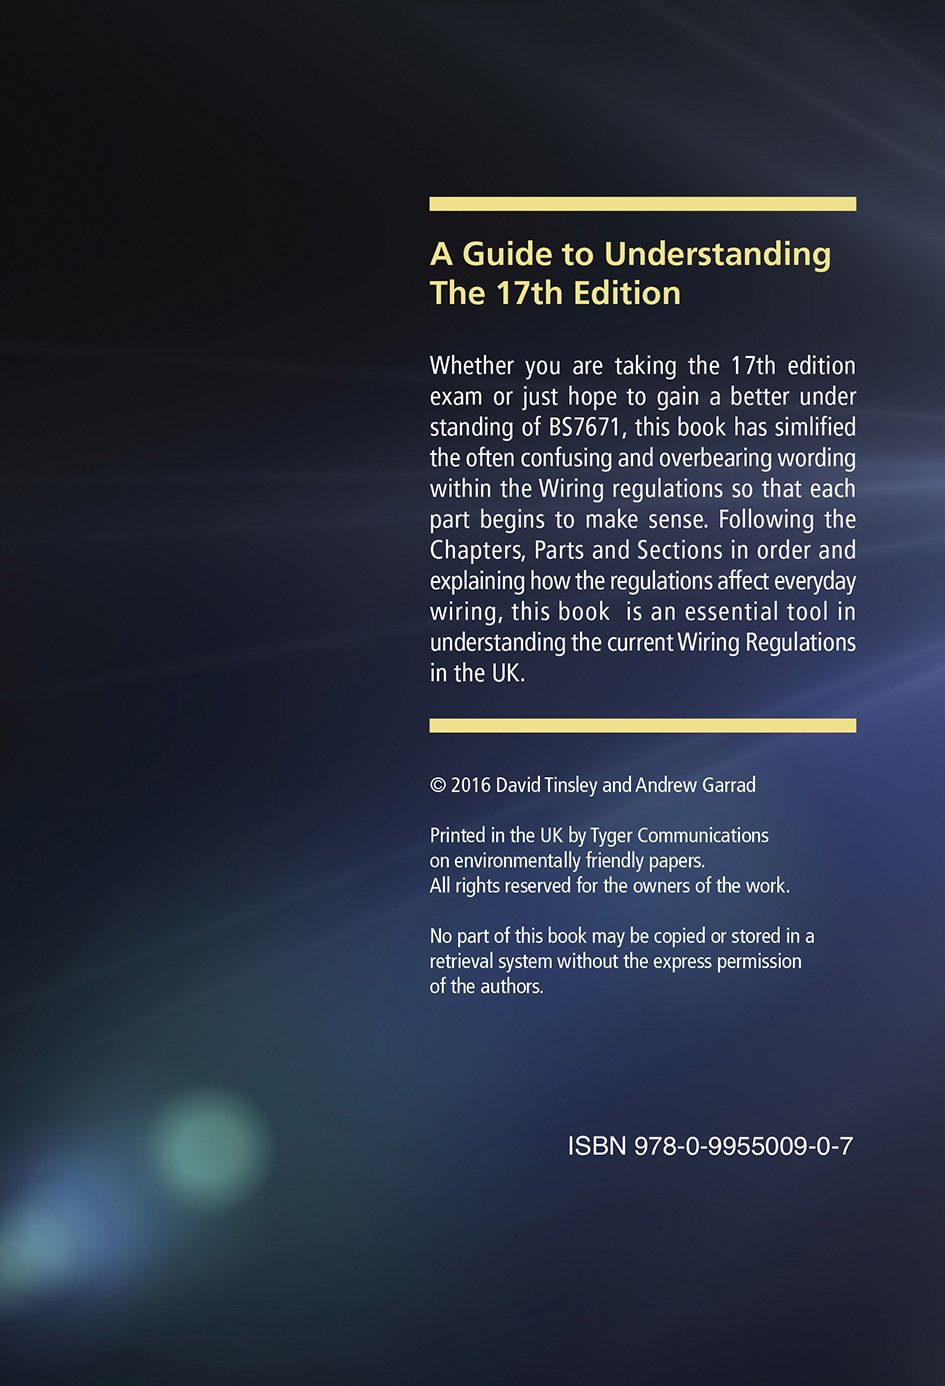 A Guide to Understanding the 17th Edition Wiring Regulations Amazon.co.uk David Tinsley Andrew Garrad 9780995500907 Books : wiring regulations uk - yogabreezes.com